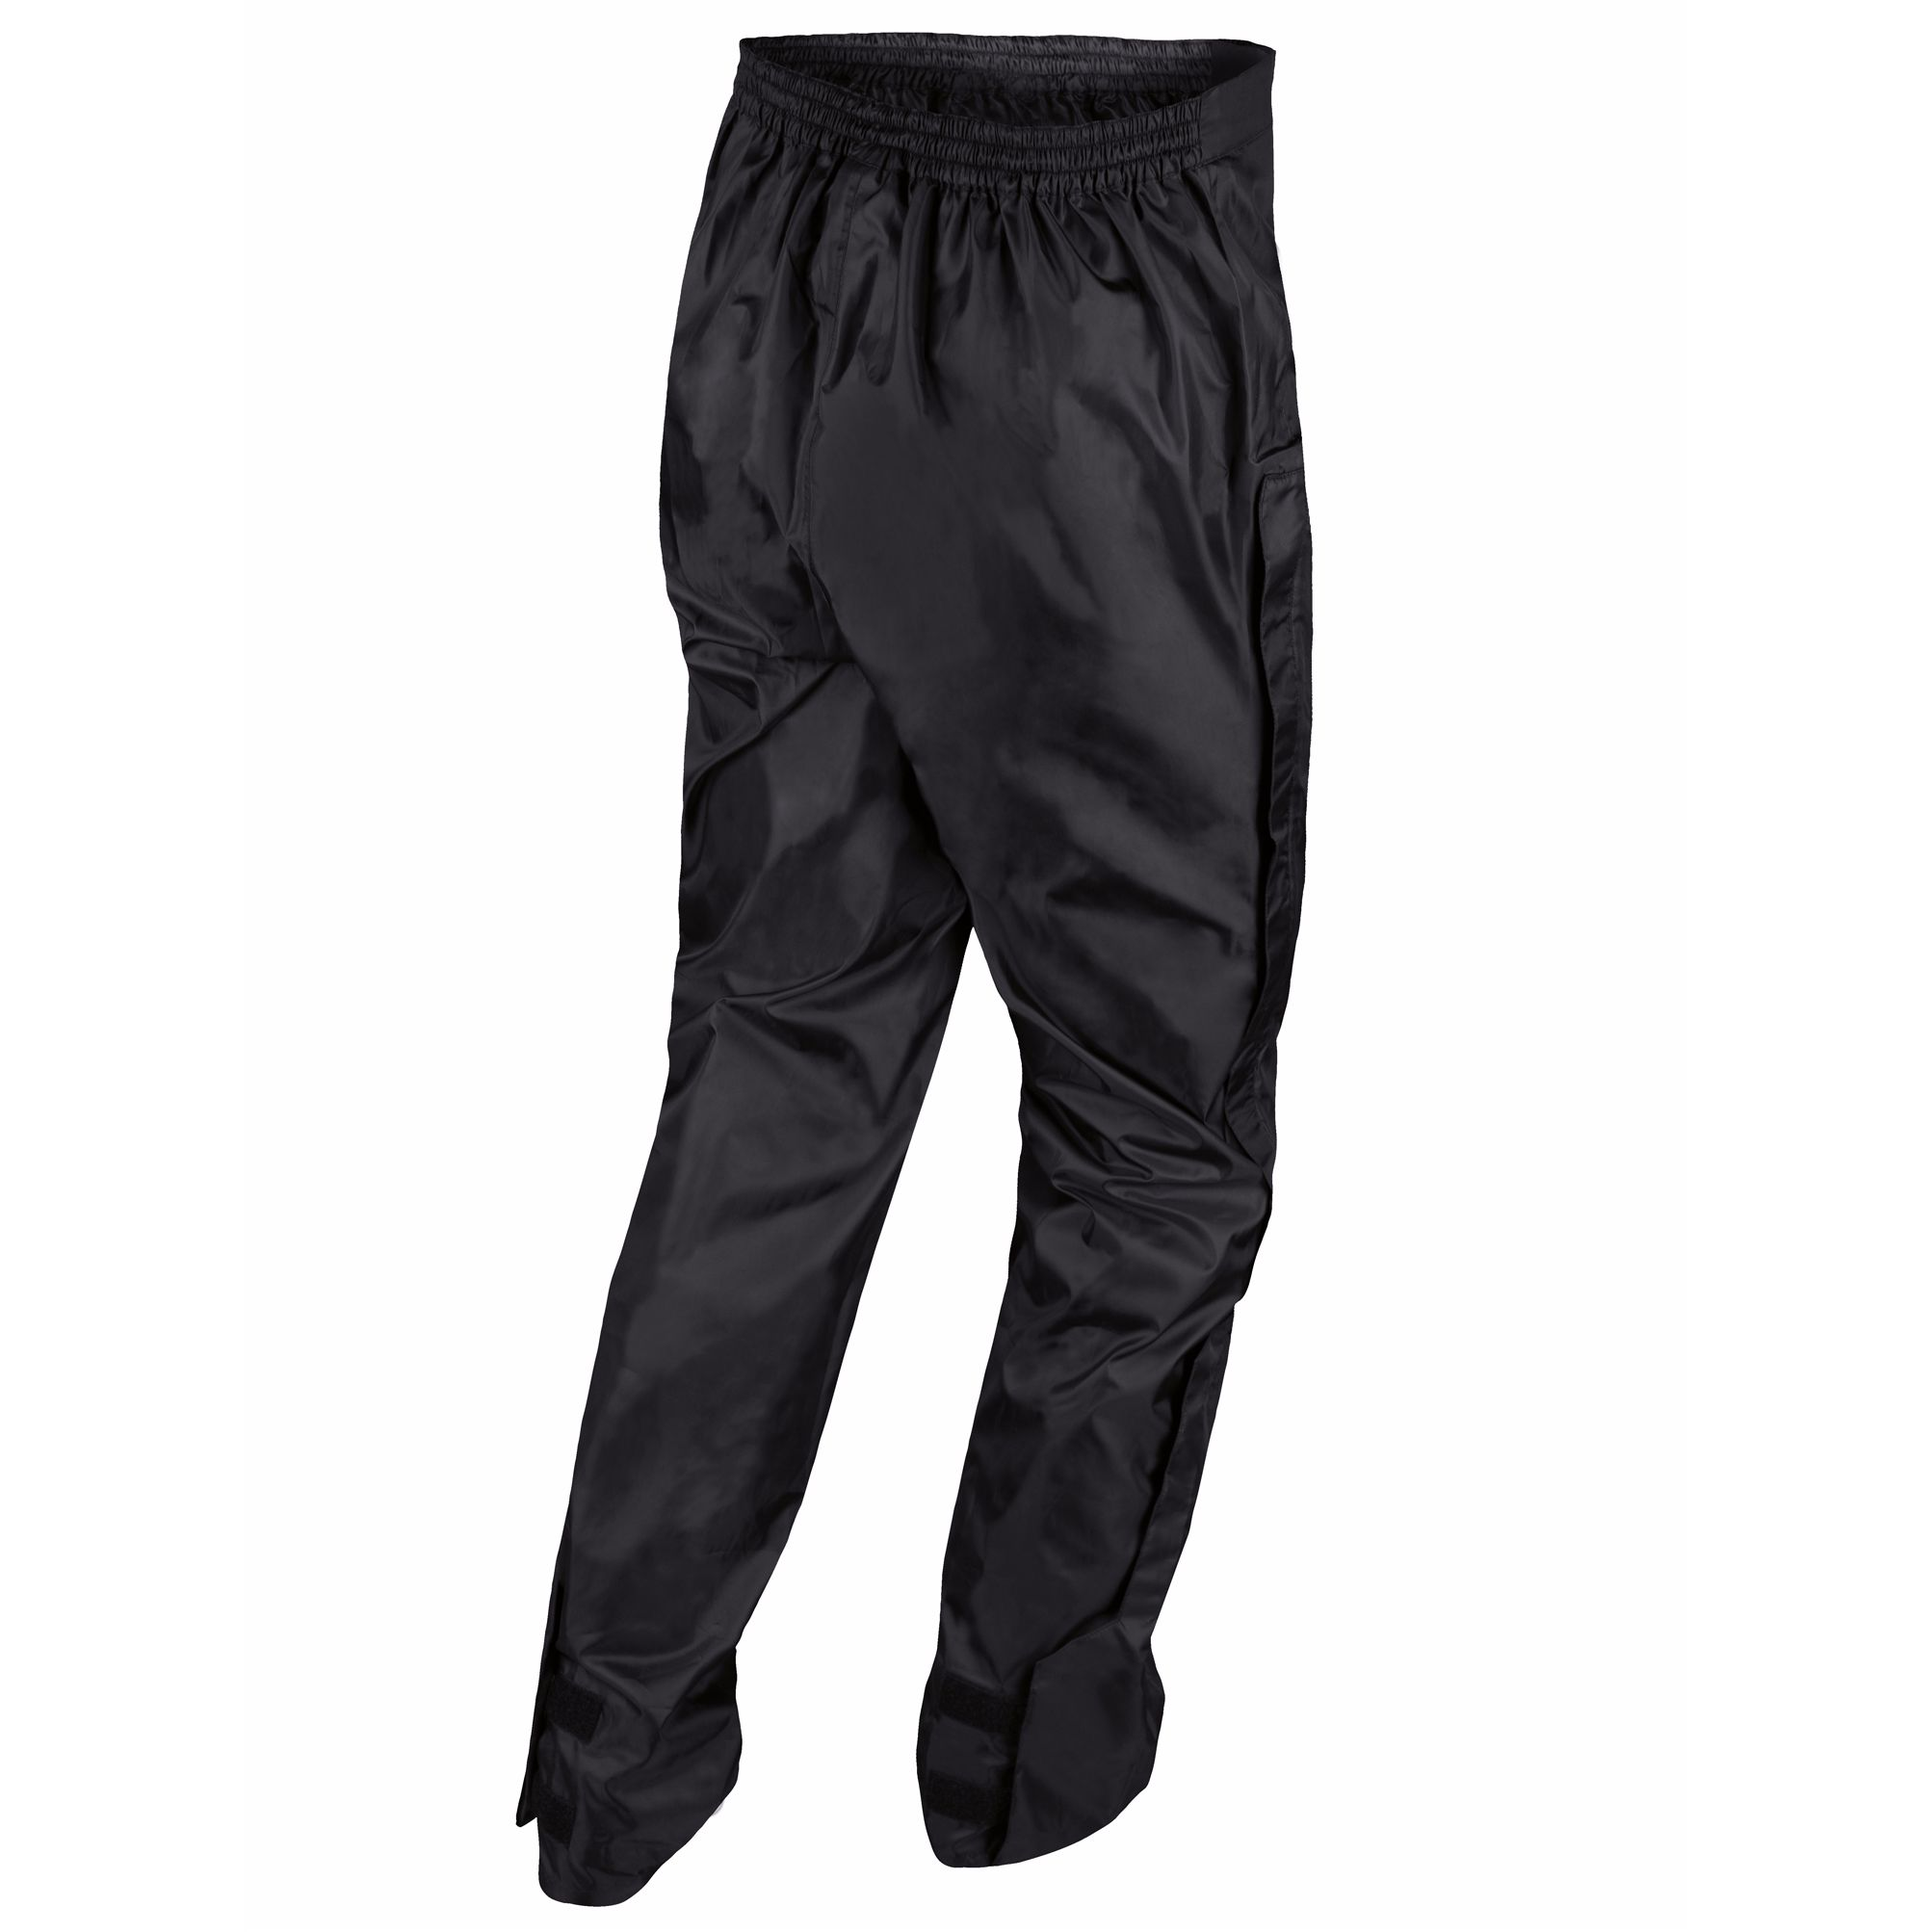 Pantalones impermeable Bering TITO